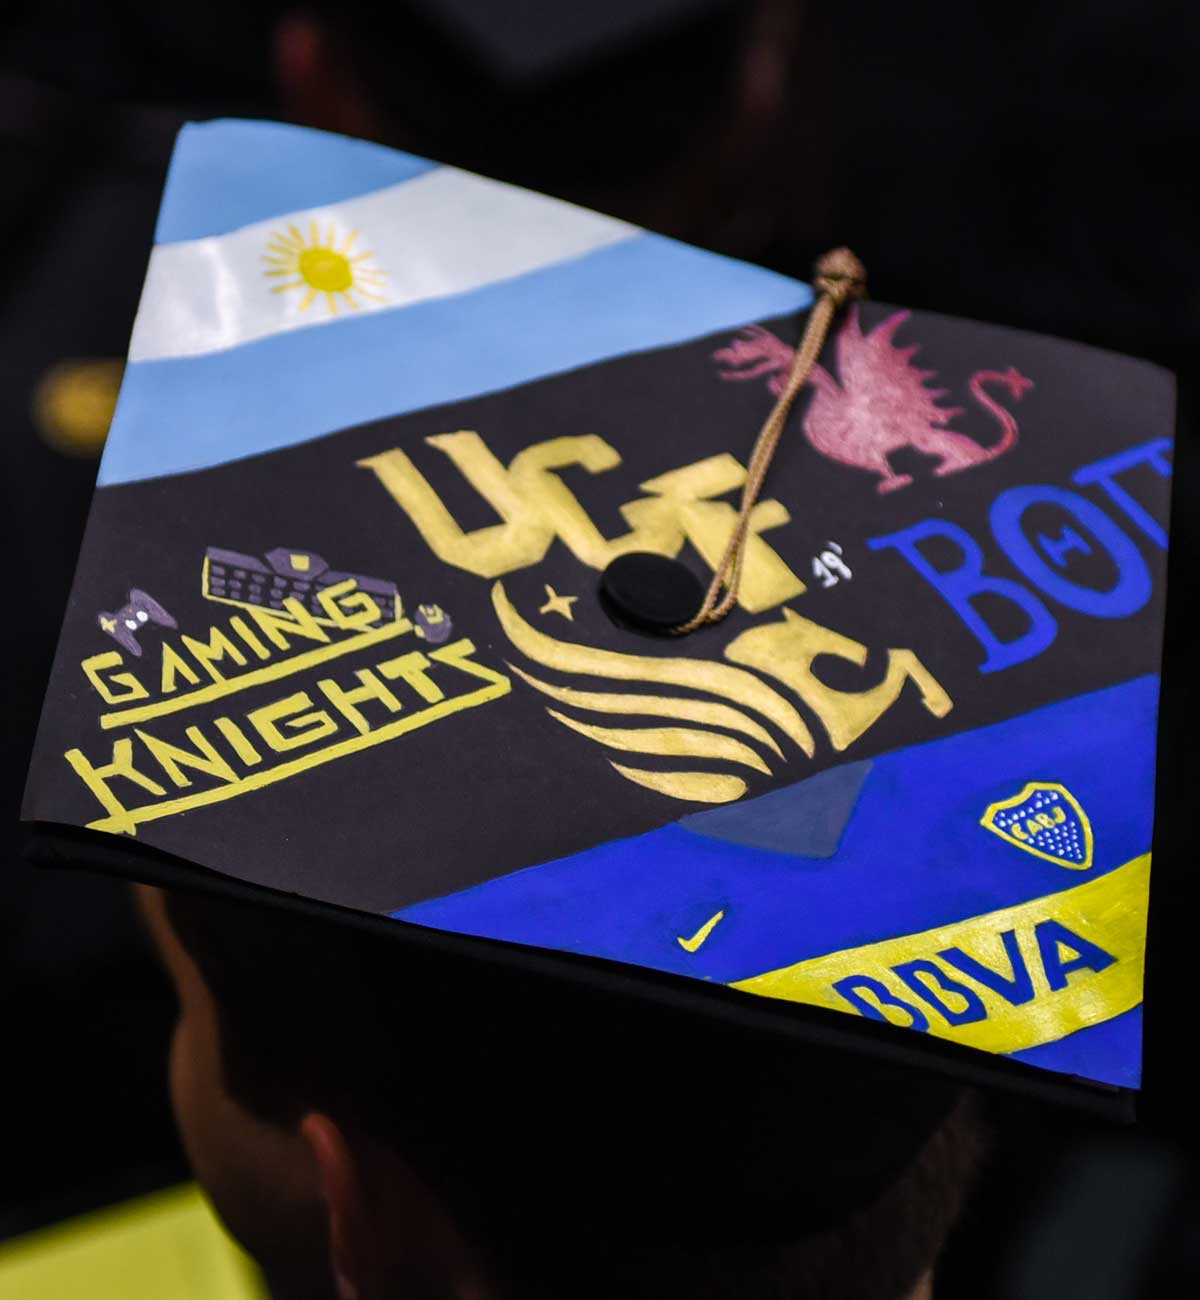 Grad cap decorated with Gaming Knights and UCF pegasus logo